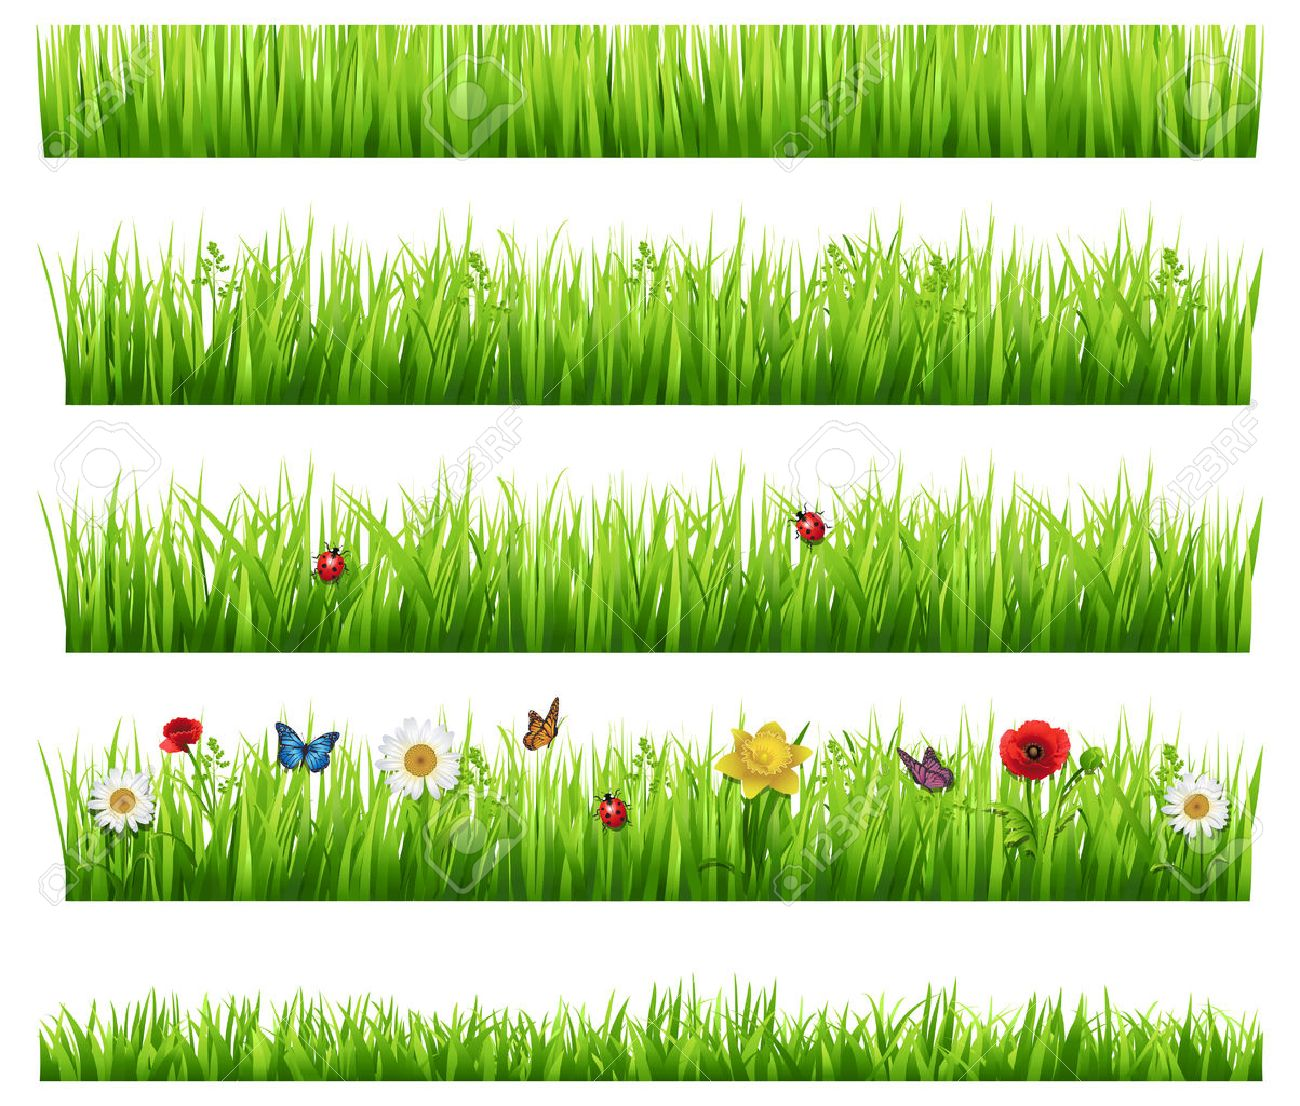 Green grass collection - 25311064